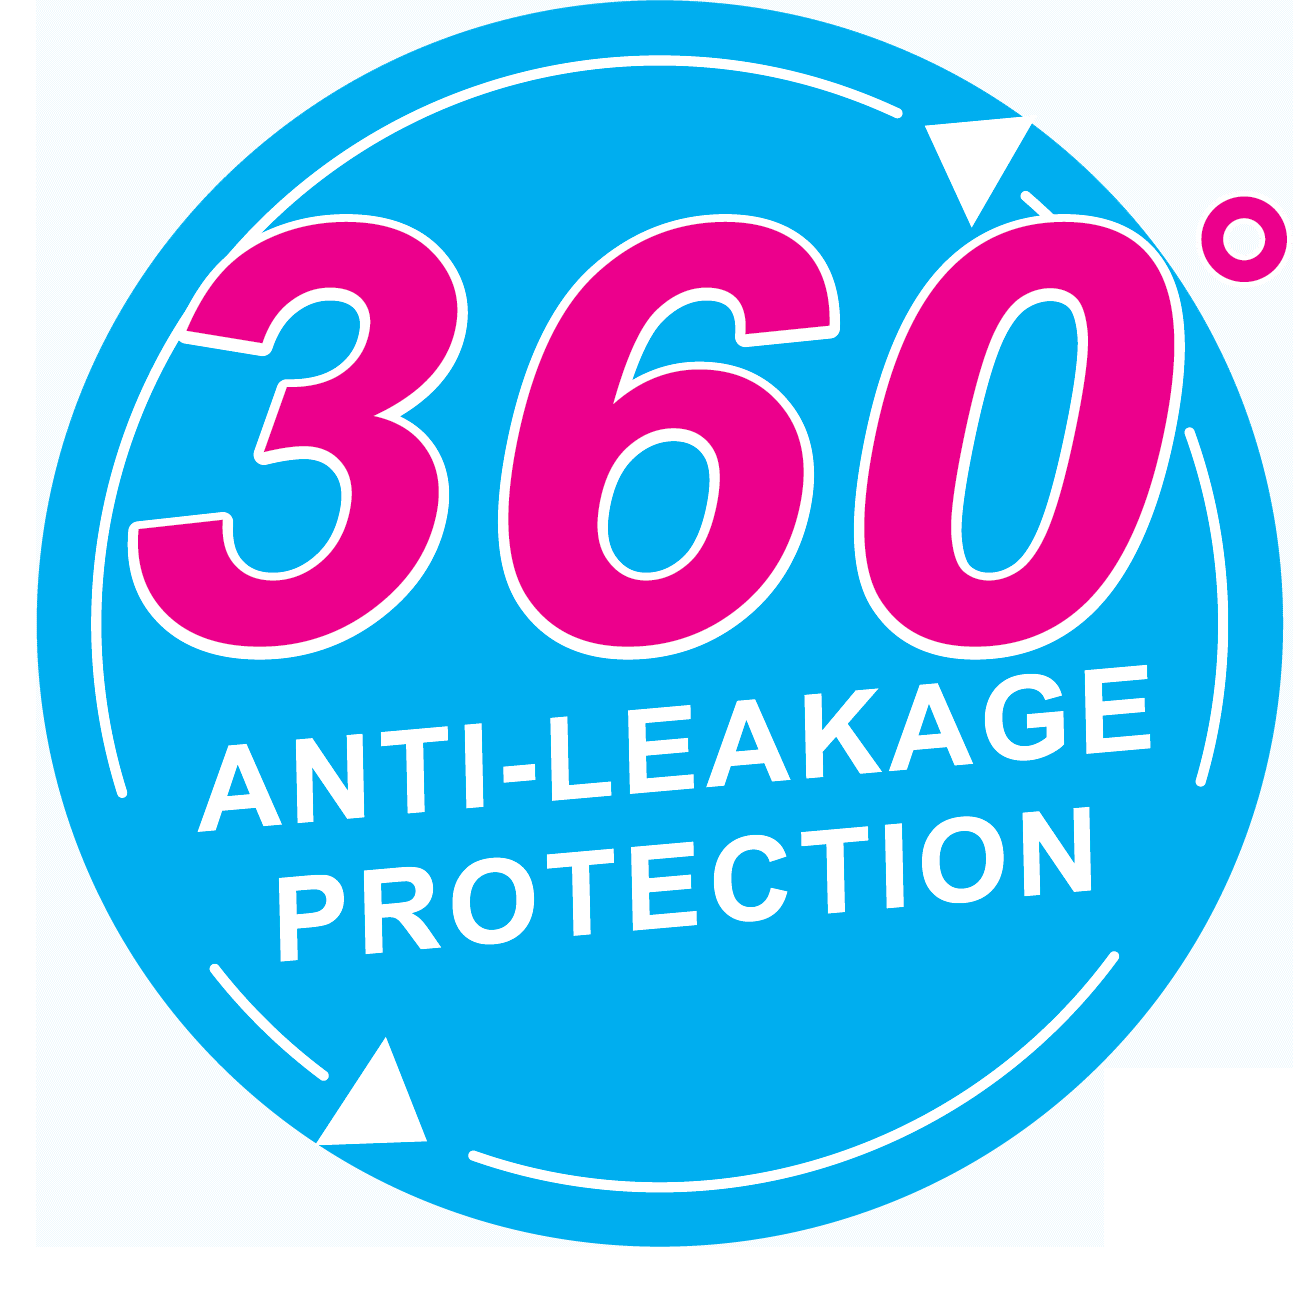 360 degree leakage protection